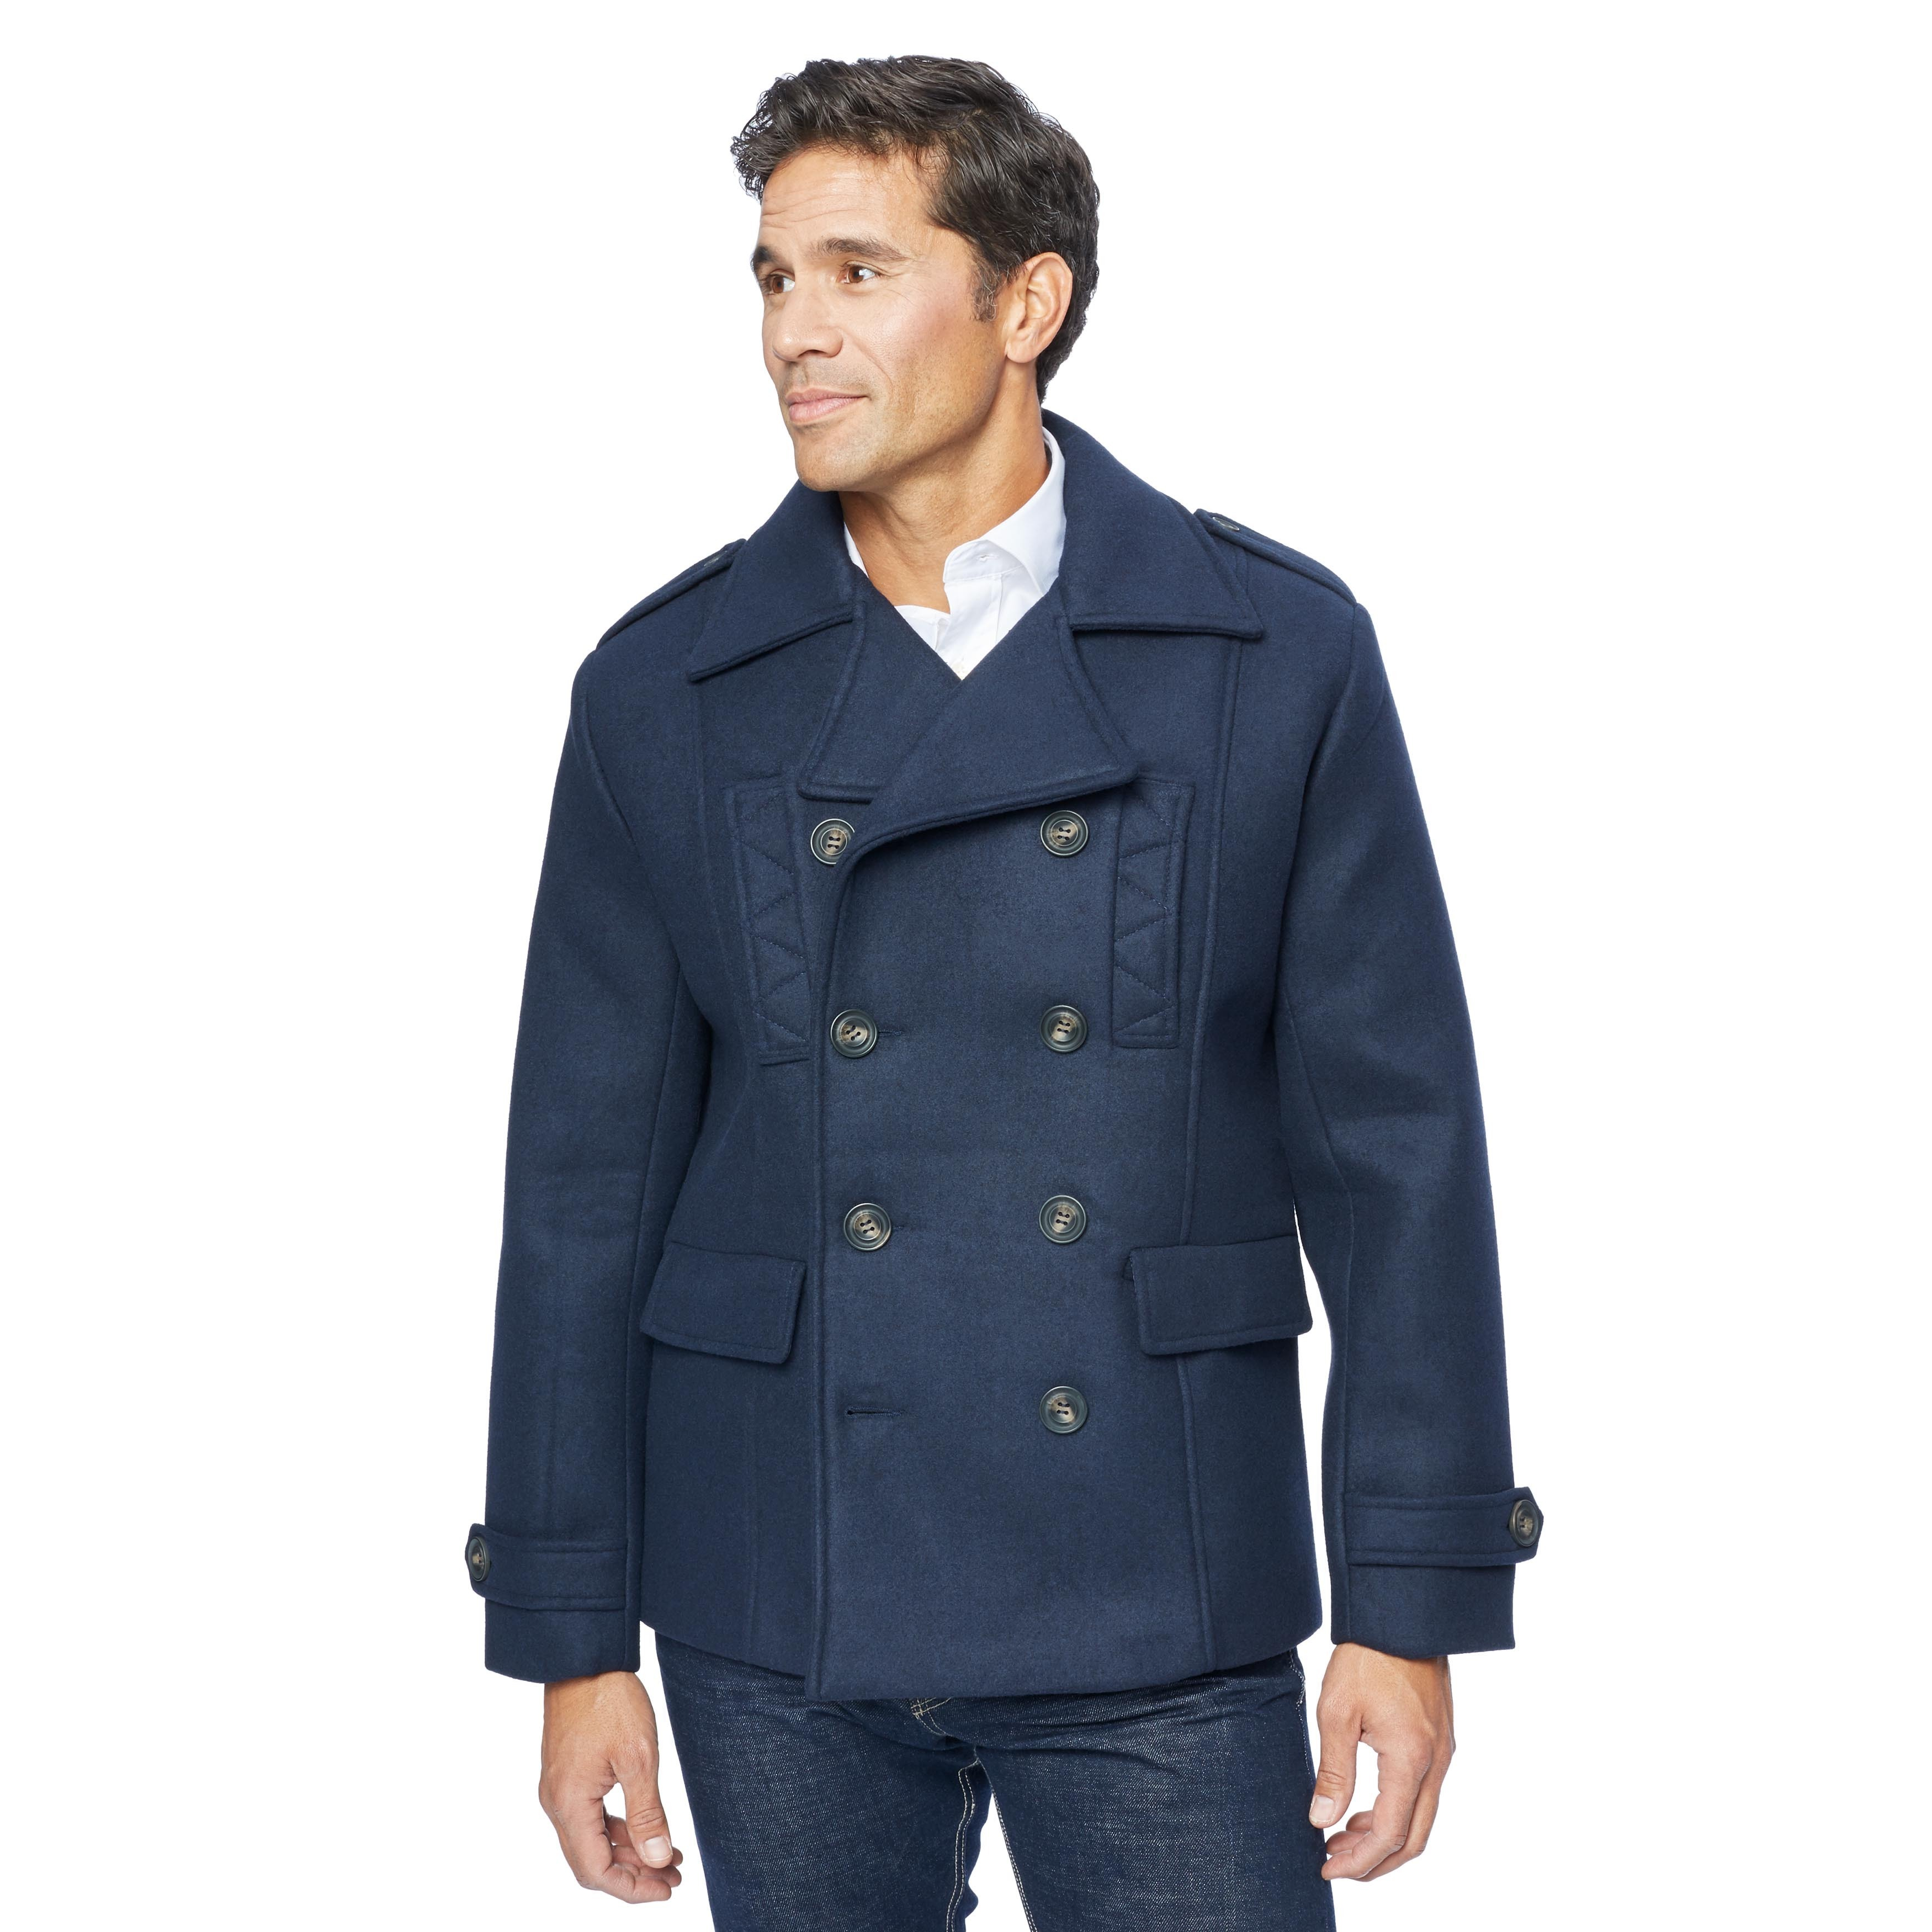 Mens Wool Blend Warm Pea Coat